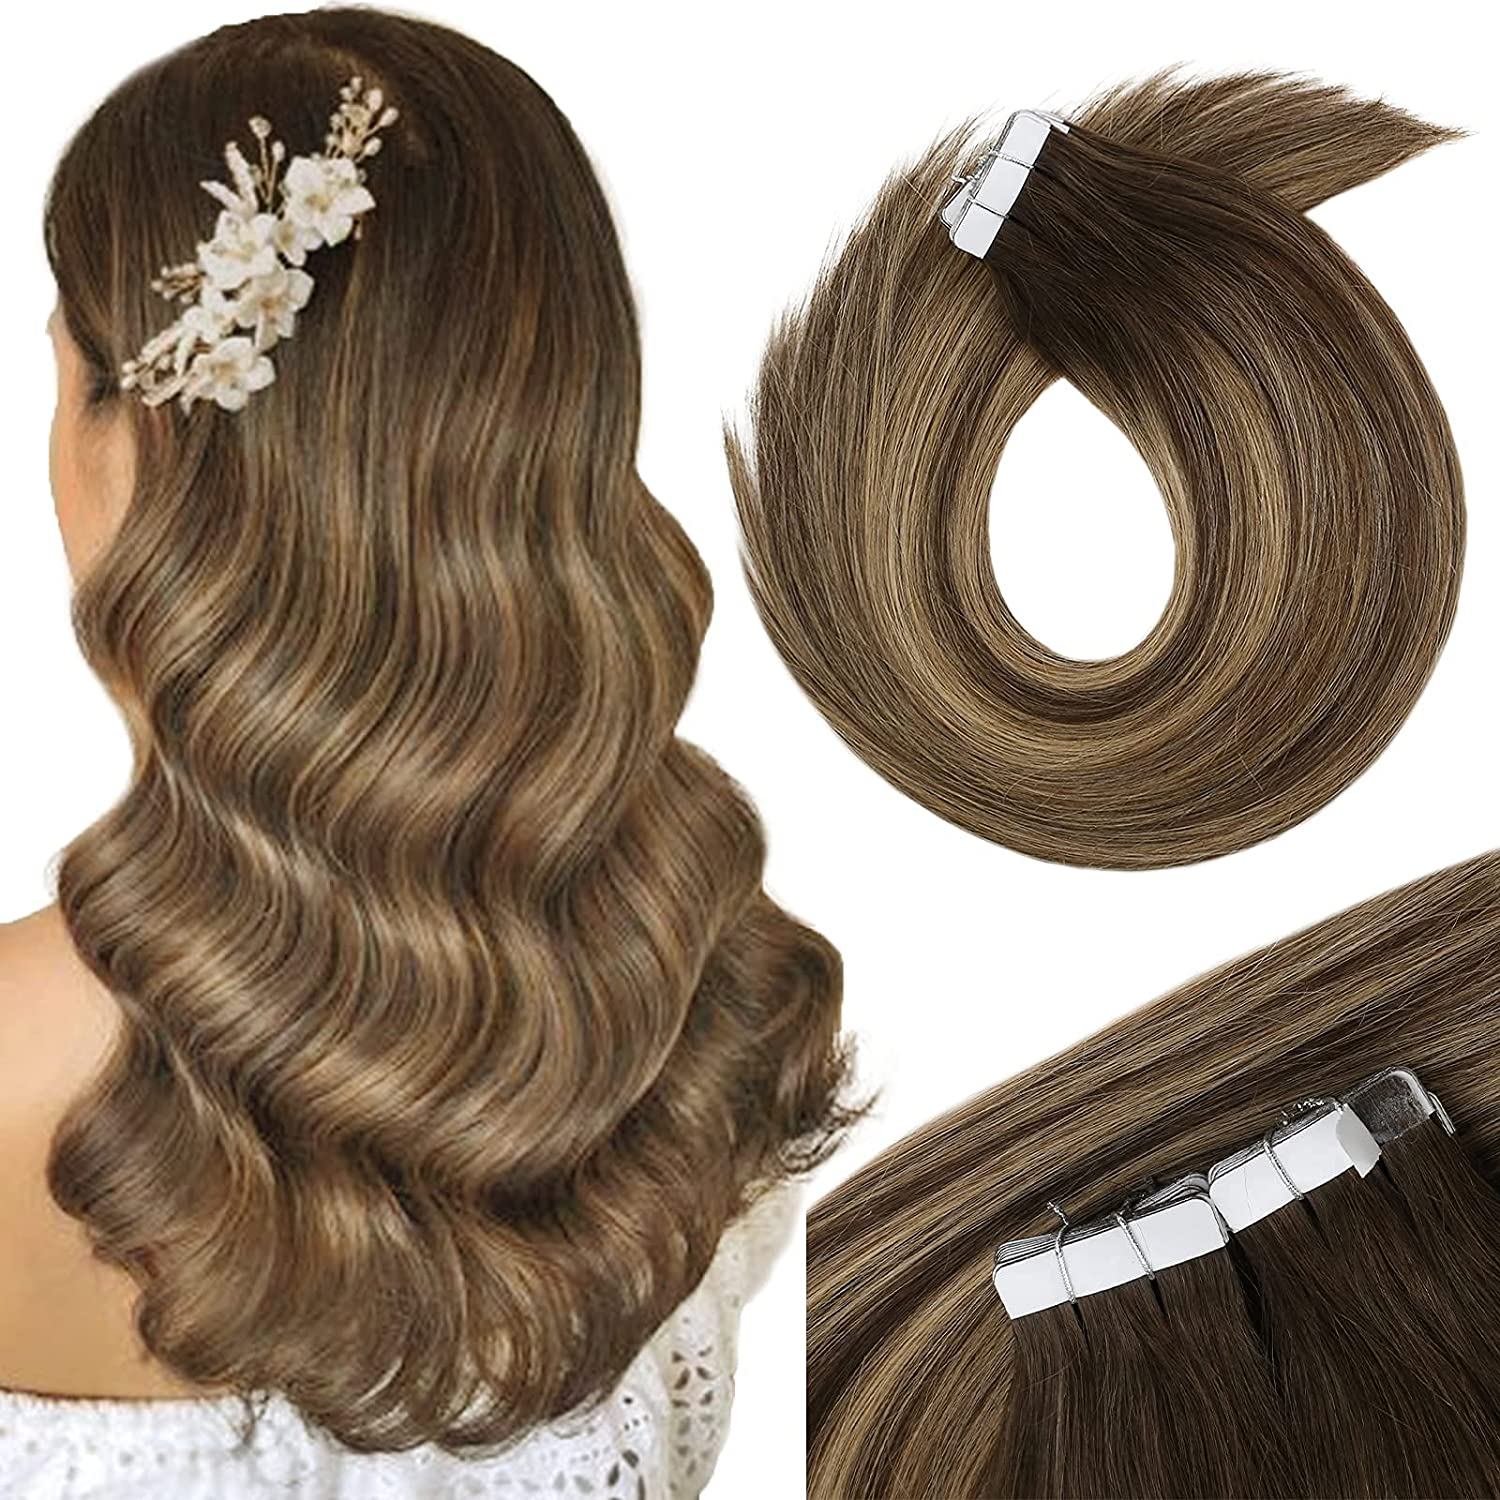 VeSunny Tape in Japan's largest assortment Hair Extensions Brown New color Human Silky Balayage